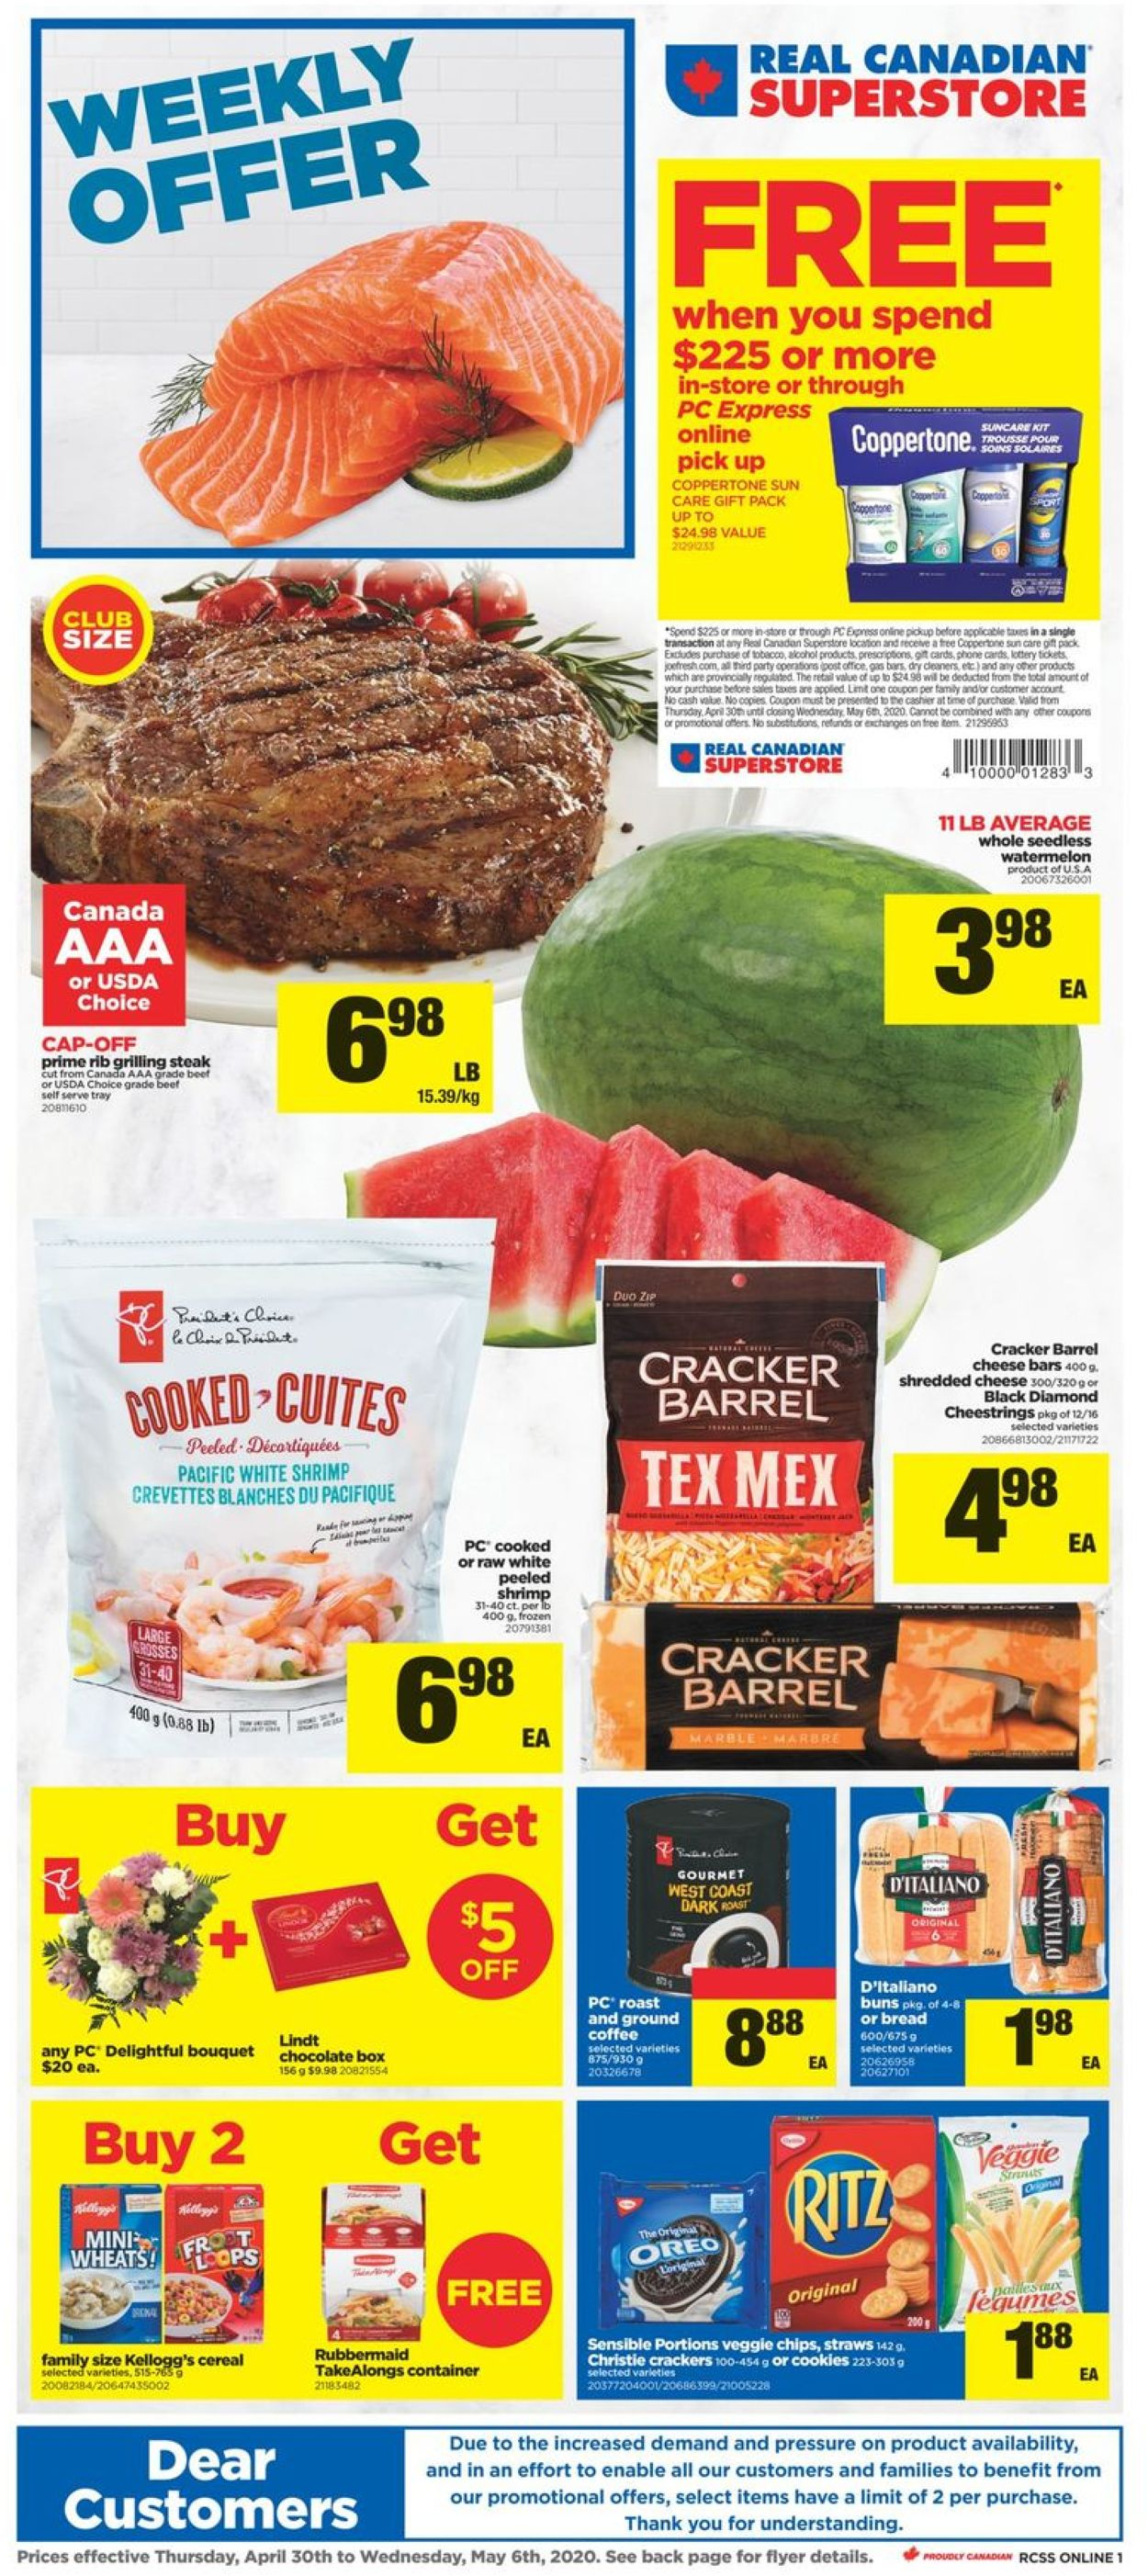 Real Canadian Superstore Flyer - 04/30-05/06/2020